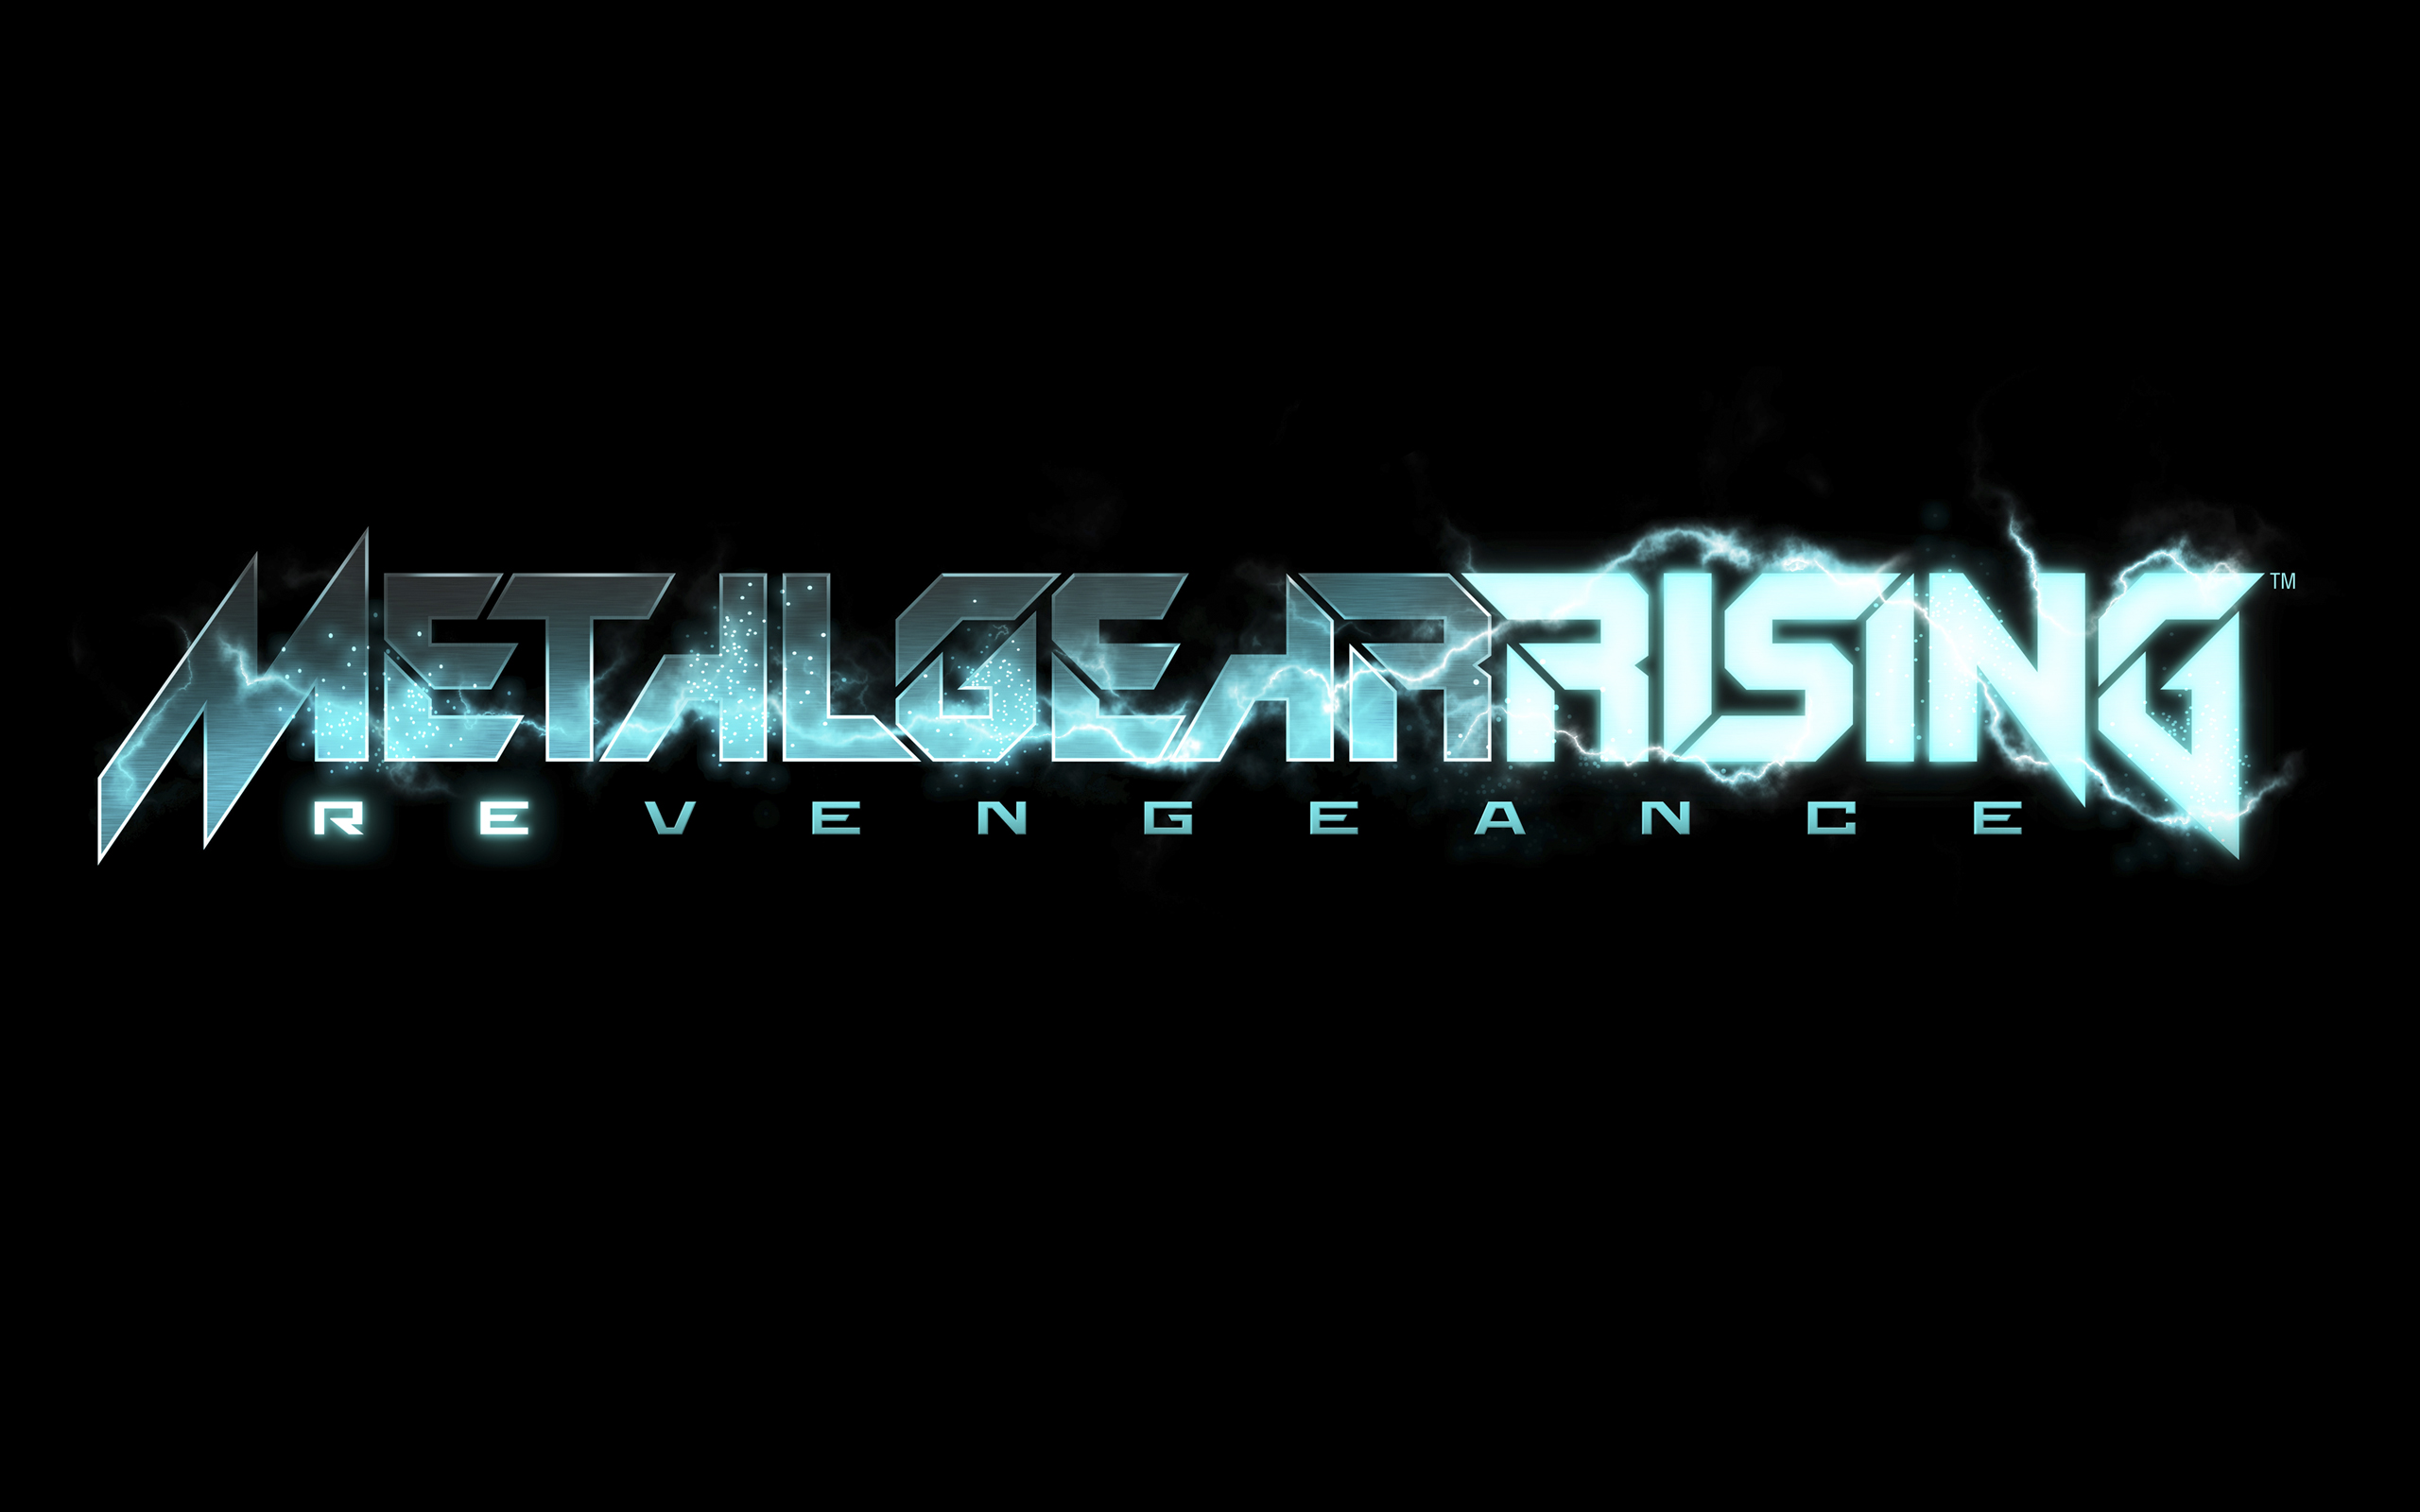 metal gear rising A4